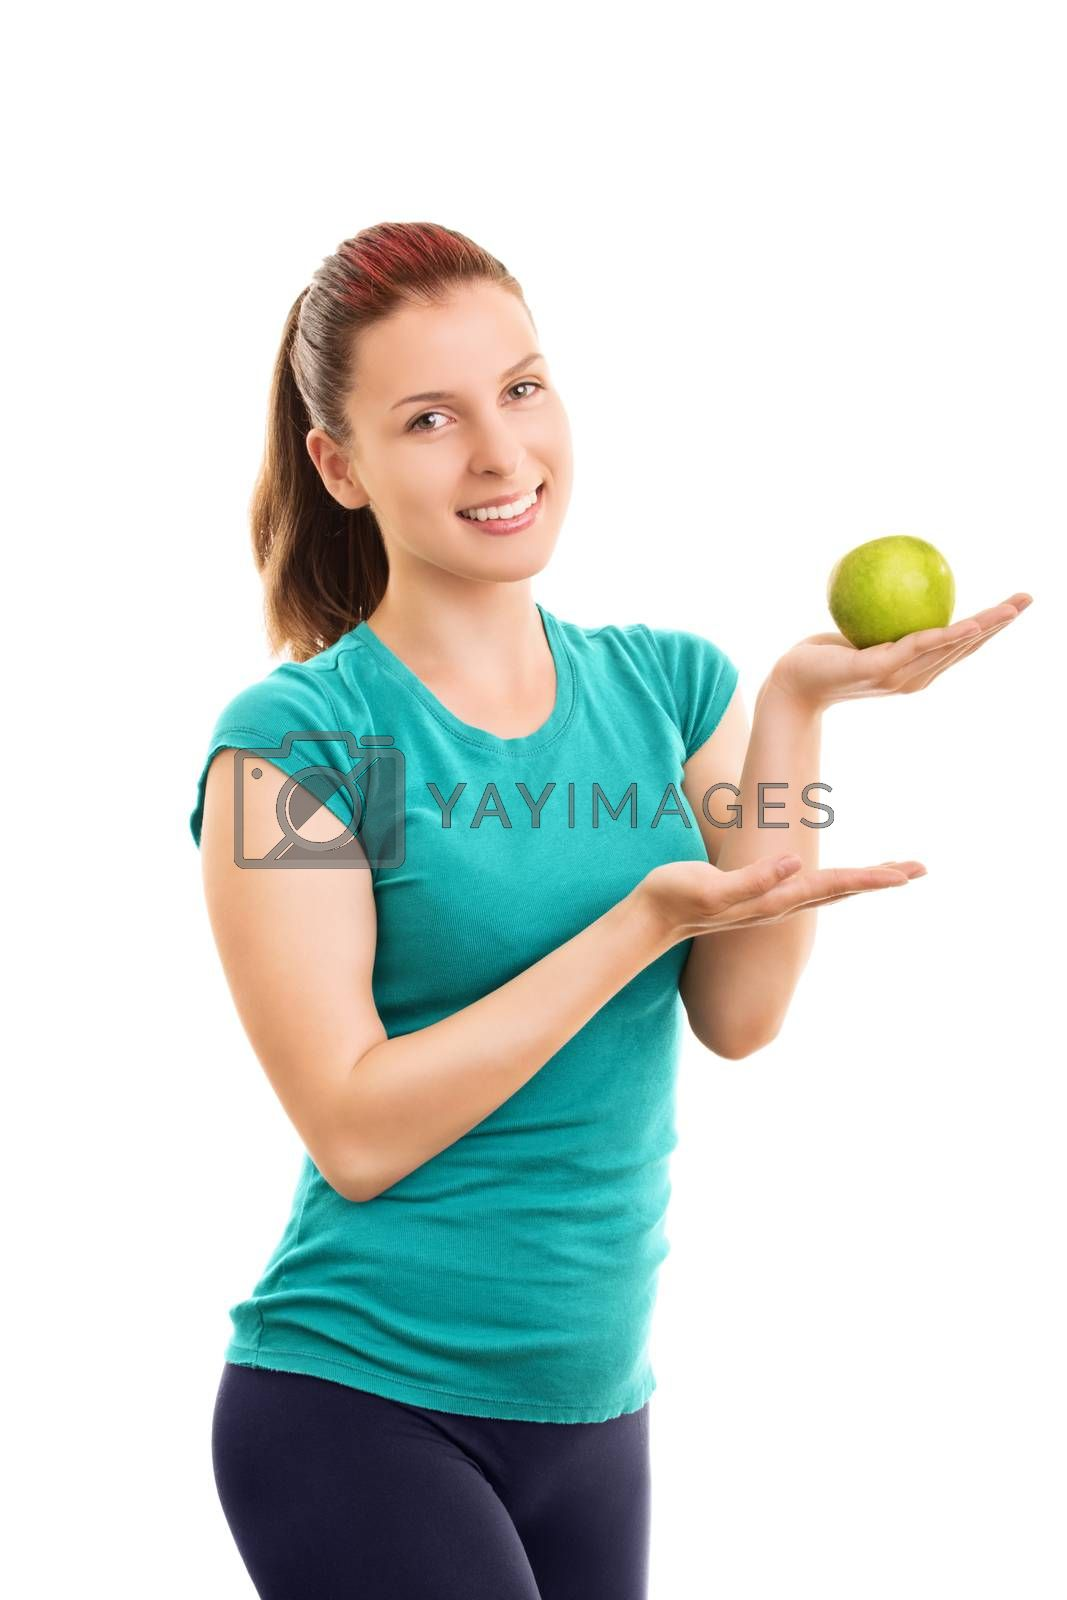 Have a bite? It's fresh and healthy. Smiling beautiful fit girl in fitness clothes holding and offering a green apple, isolated on white background.